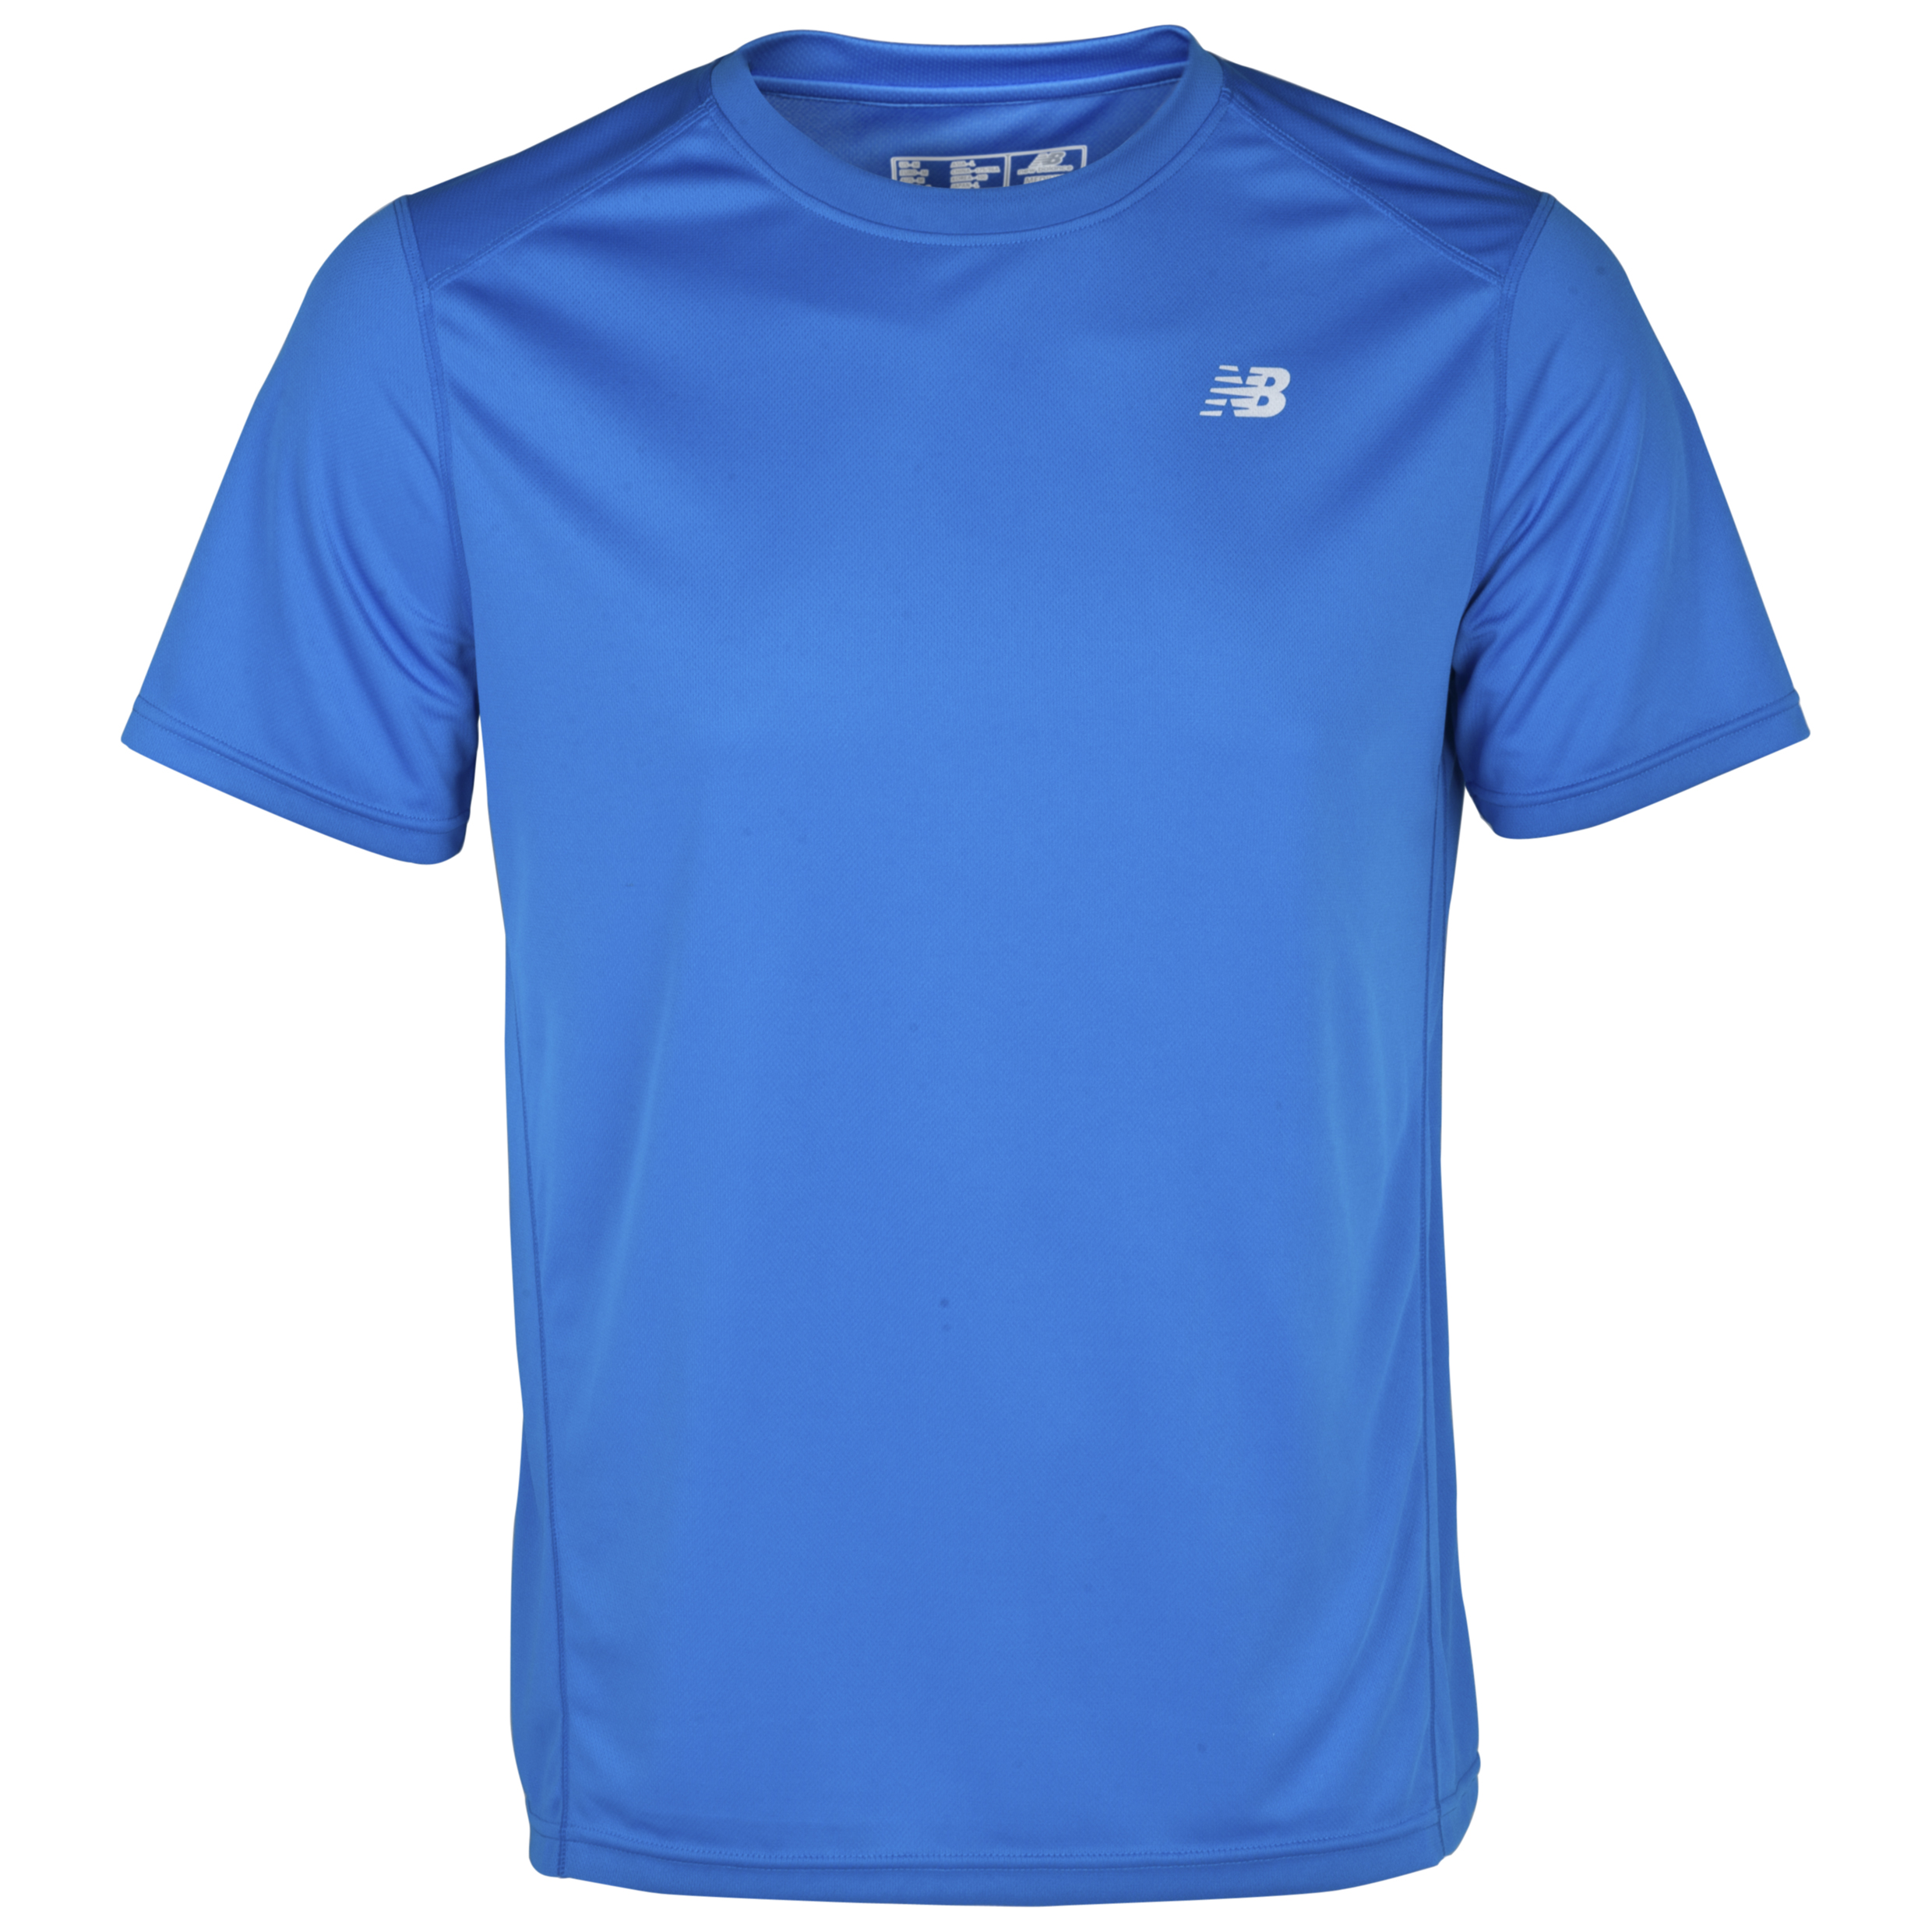 New Balance Go 2 T-Shirt - Vision Blue